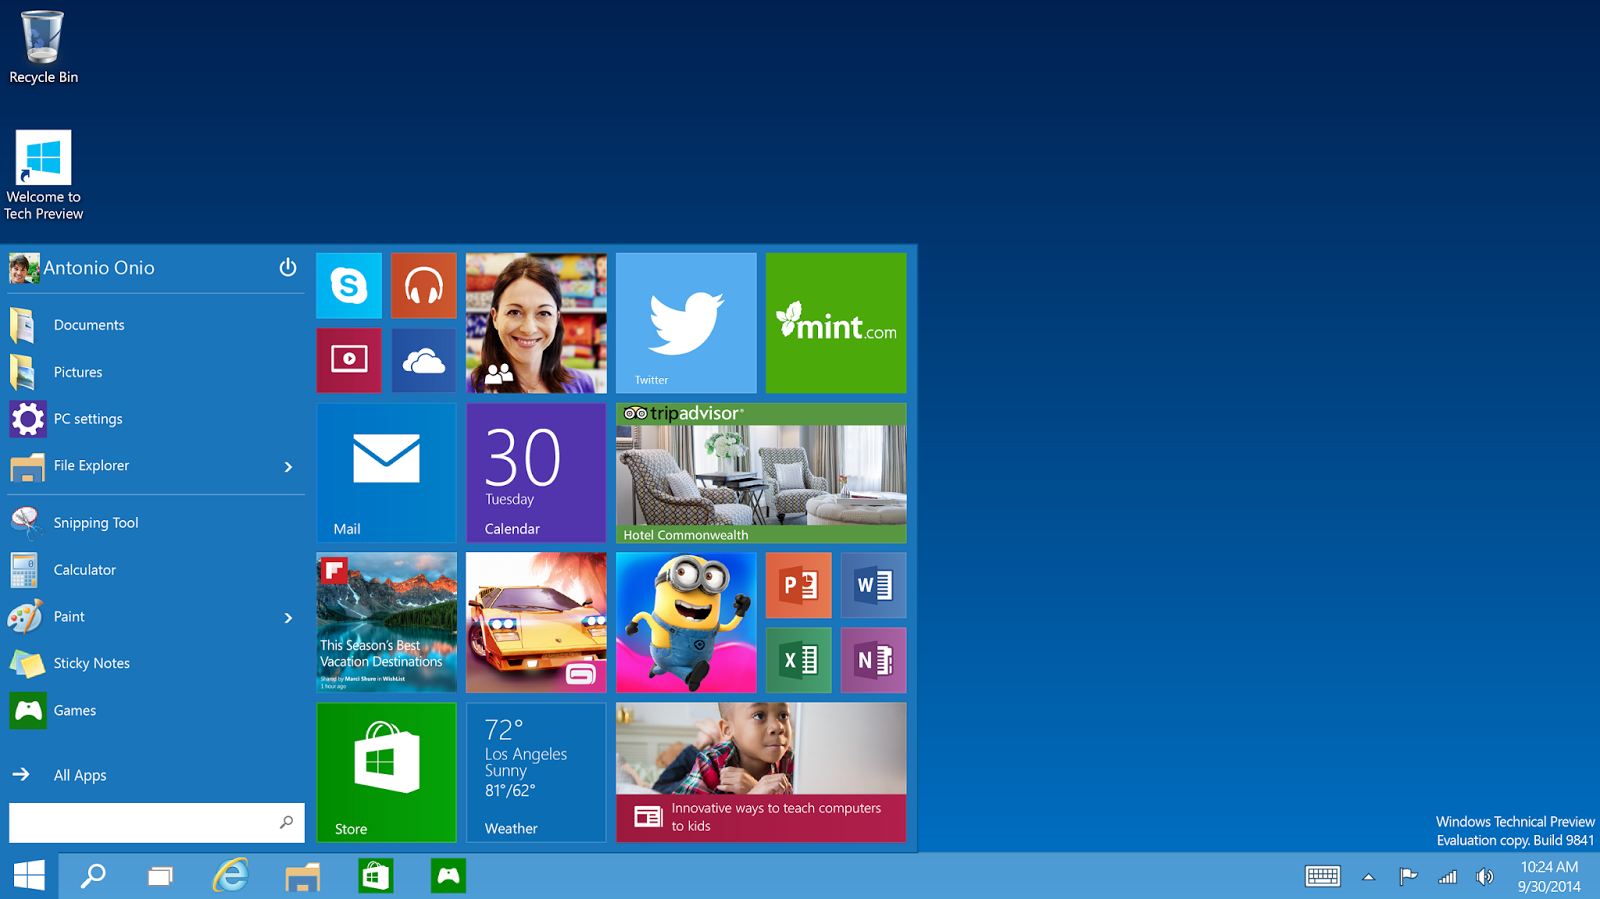 Windows 10 Technical Preview / Versi Demo / Trial